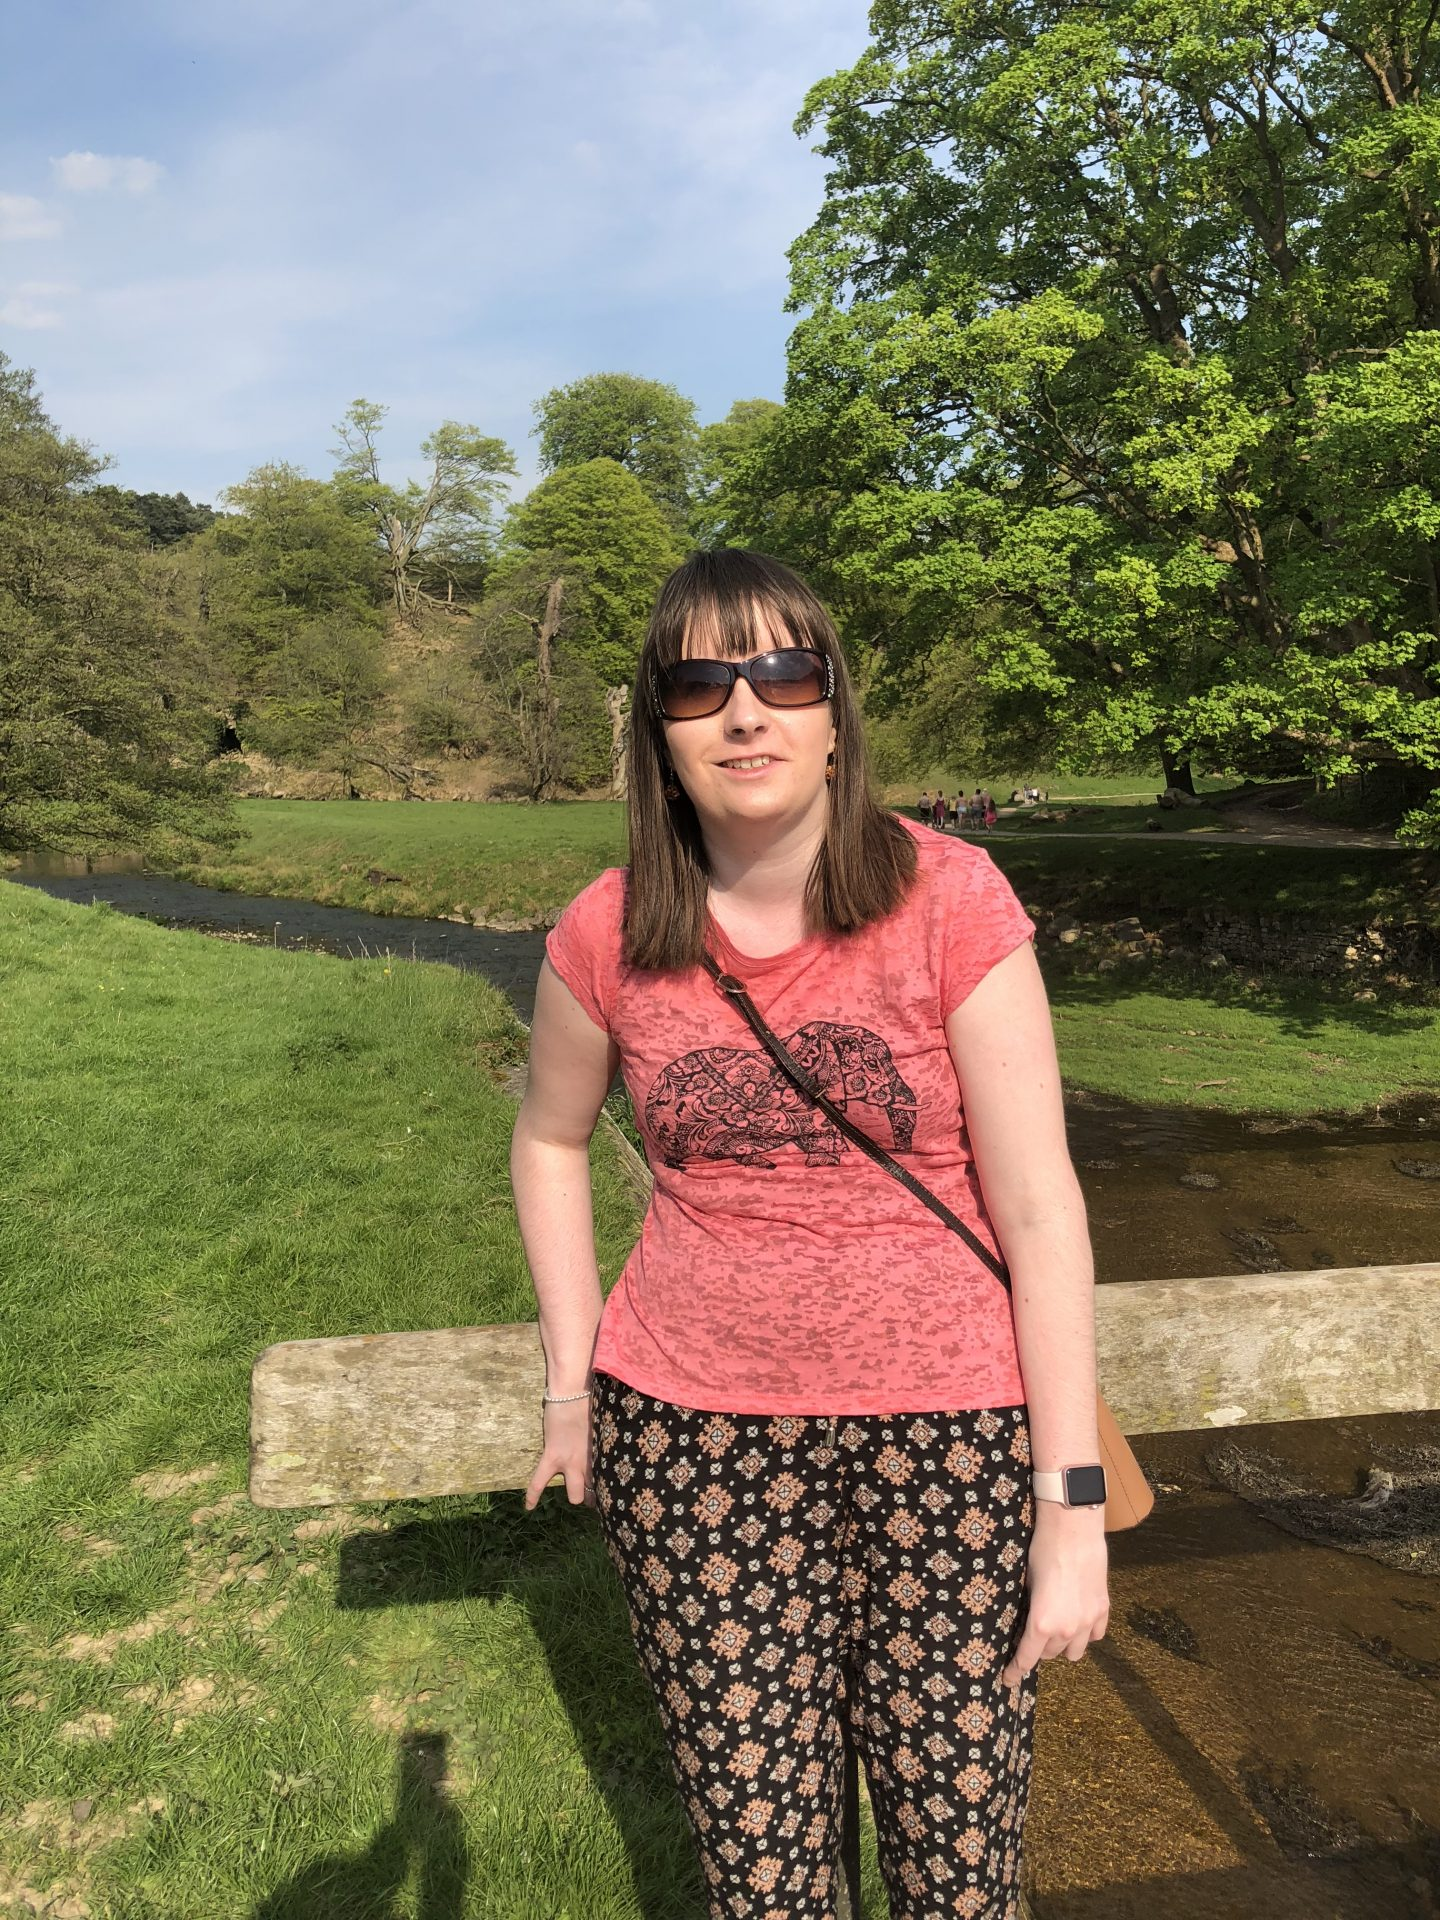 Holly wearing sunglasses, top and trousers with a waterfall in the background